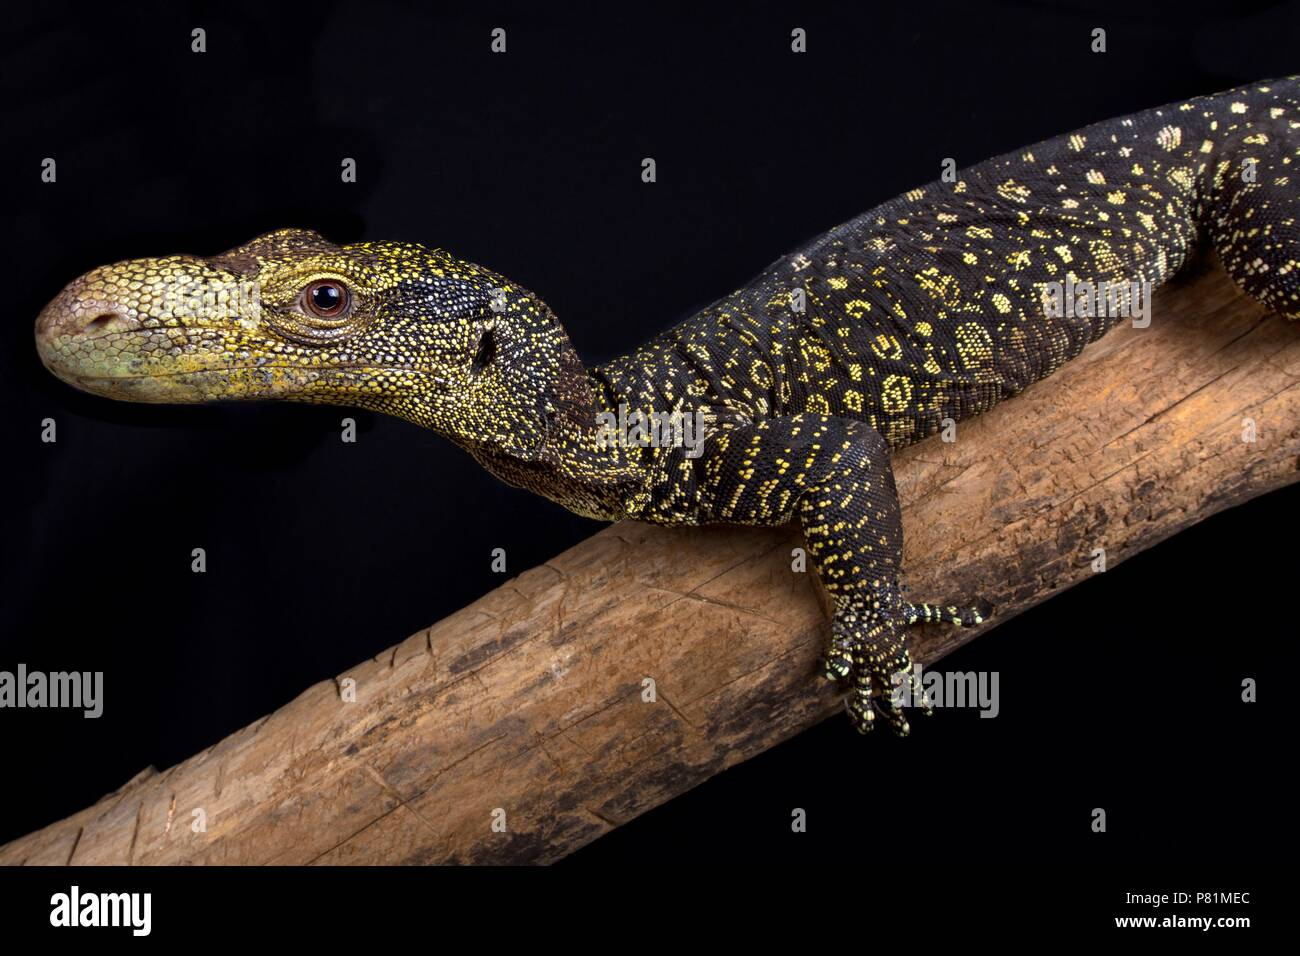 The Crocodile monitor (Varanus salvadorii) is the longest lizard species in the world. These tree dragons are endemic to Papua New Guinea and West Pap - Stock Image